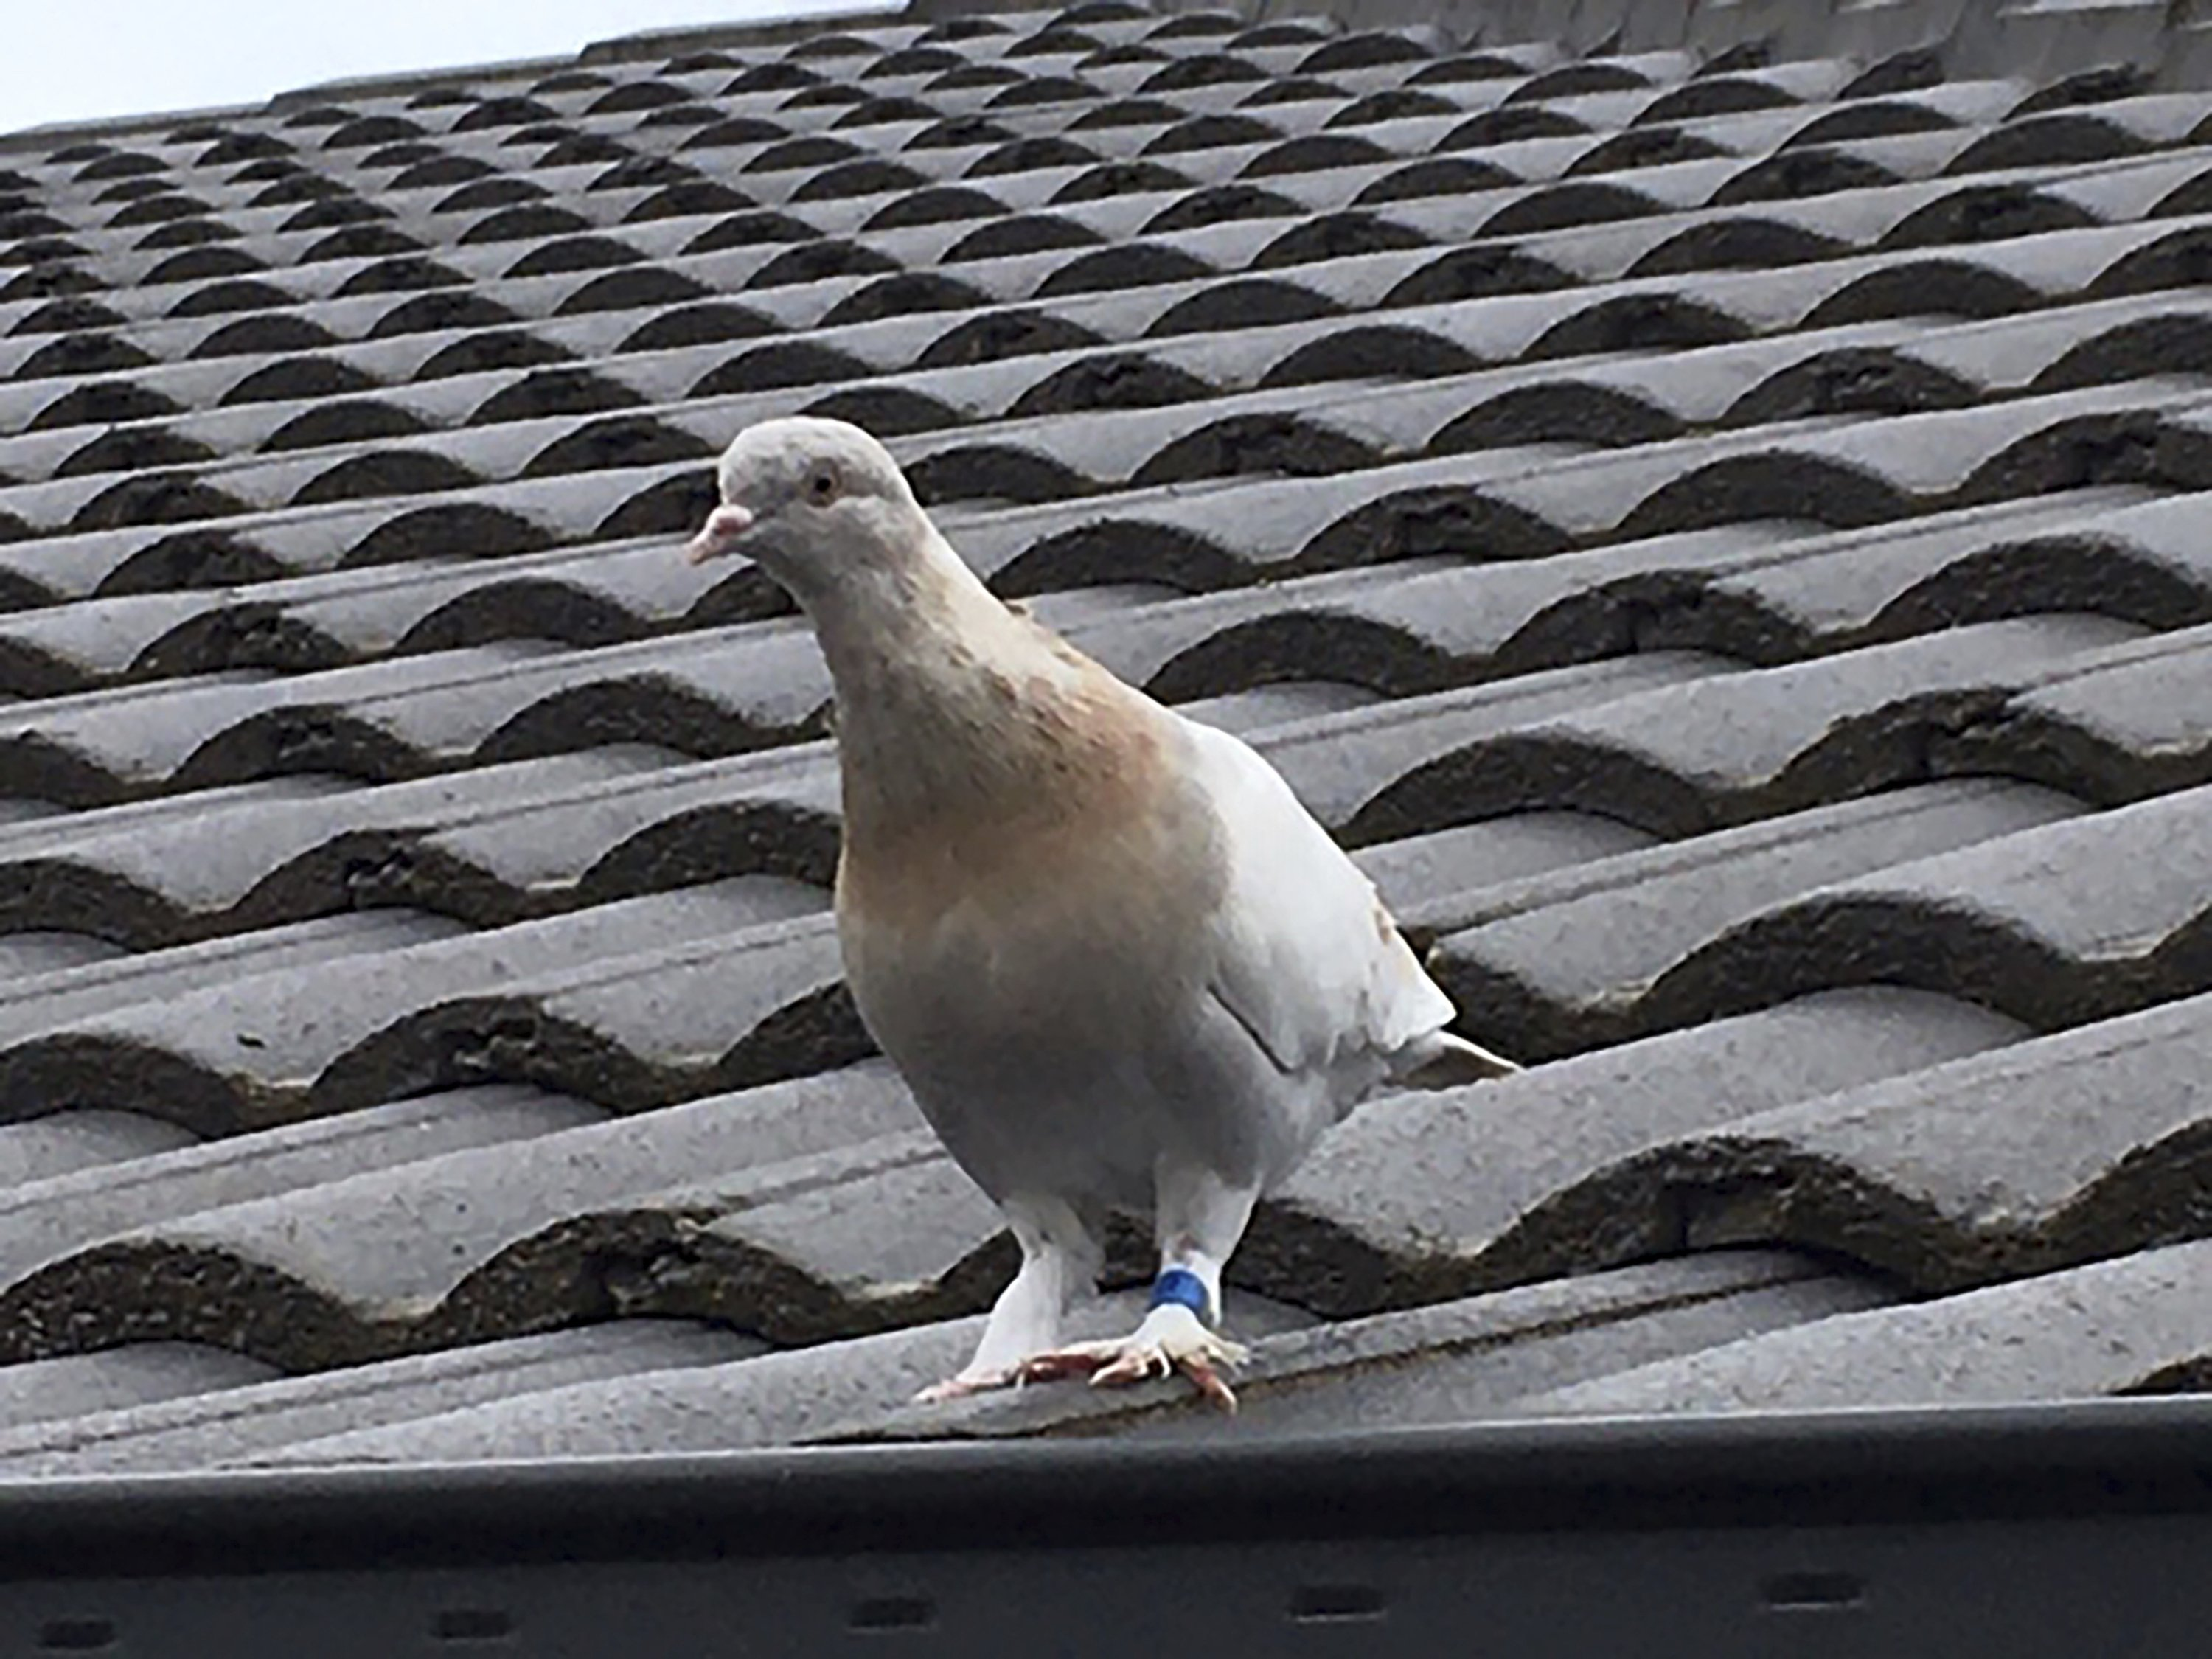 The racing pigeon, first spotted in late December 2020, sits on a rooftop in Melbourne, Australia, Jan. 12, 2021. (Channel 9 Photo via AP)